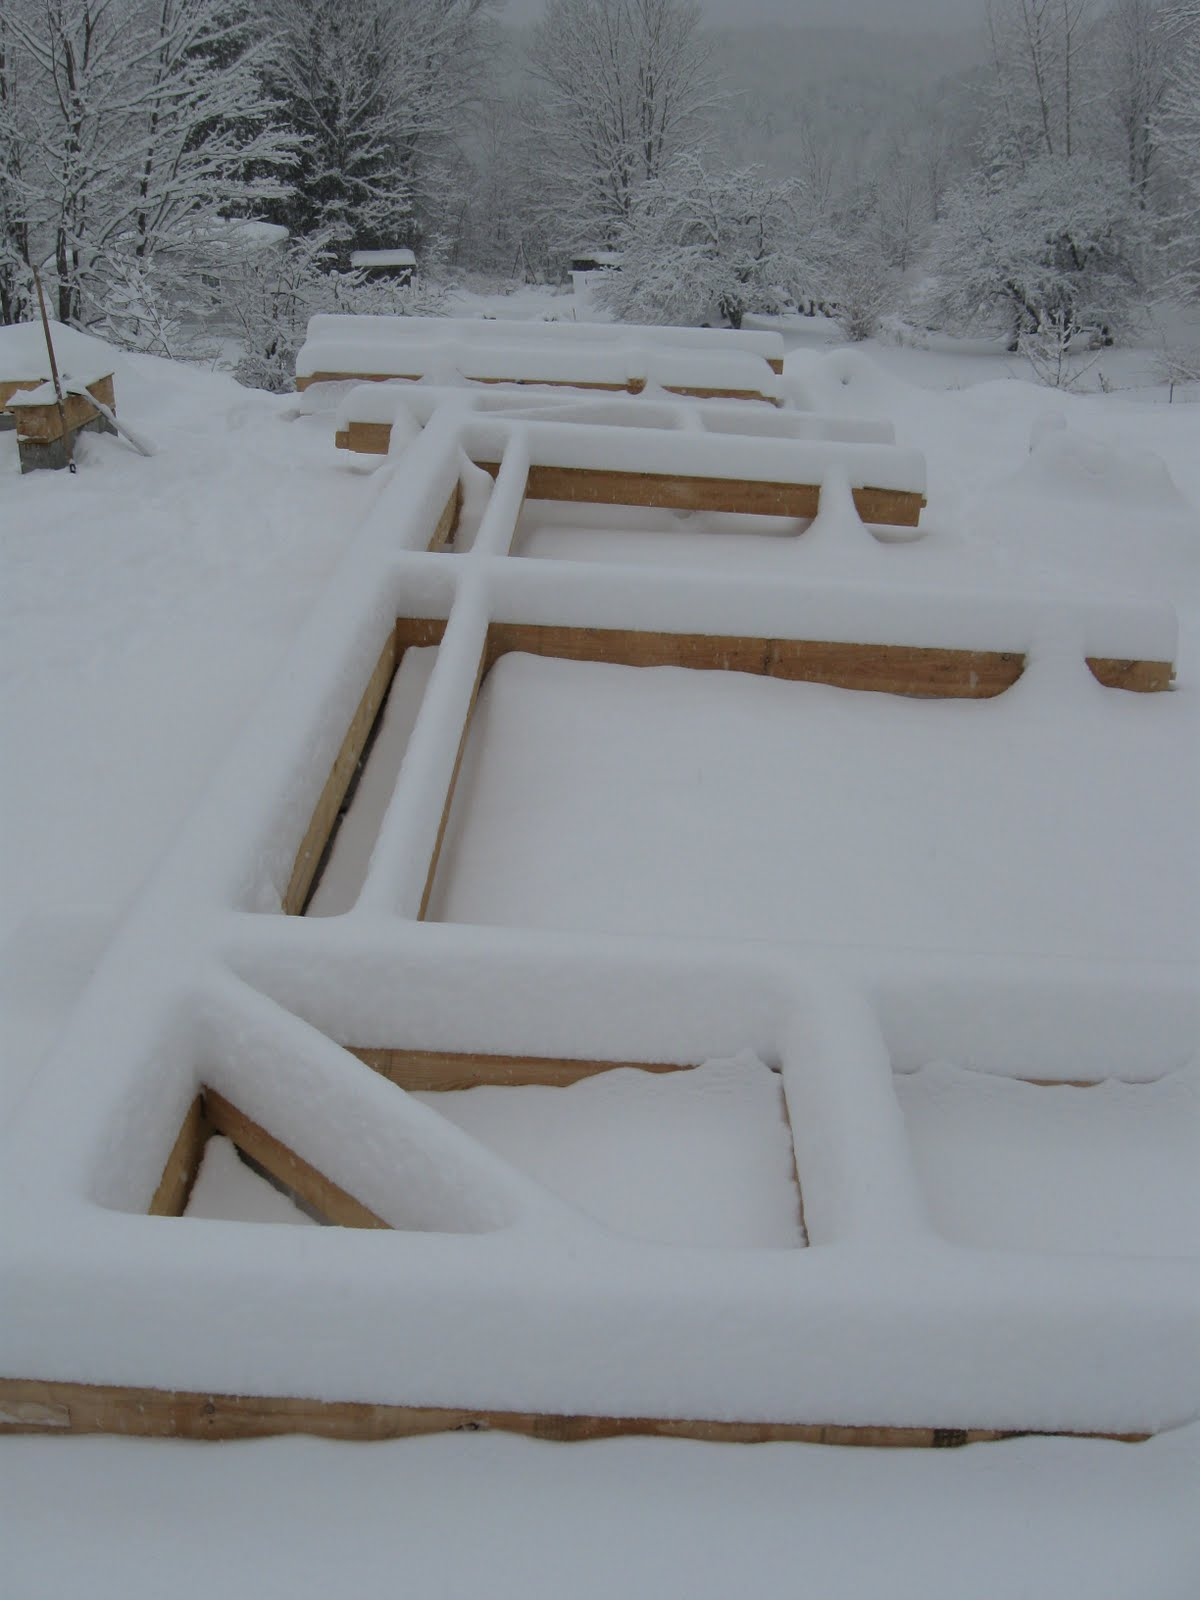 An unexpected snowfall covers the first assembled bent.